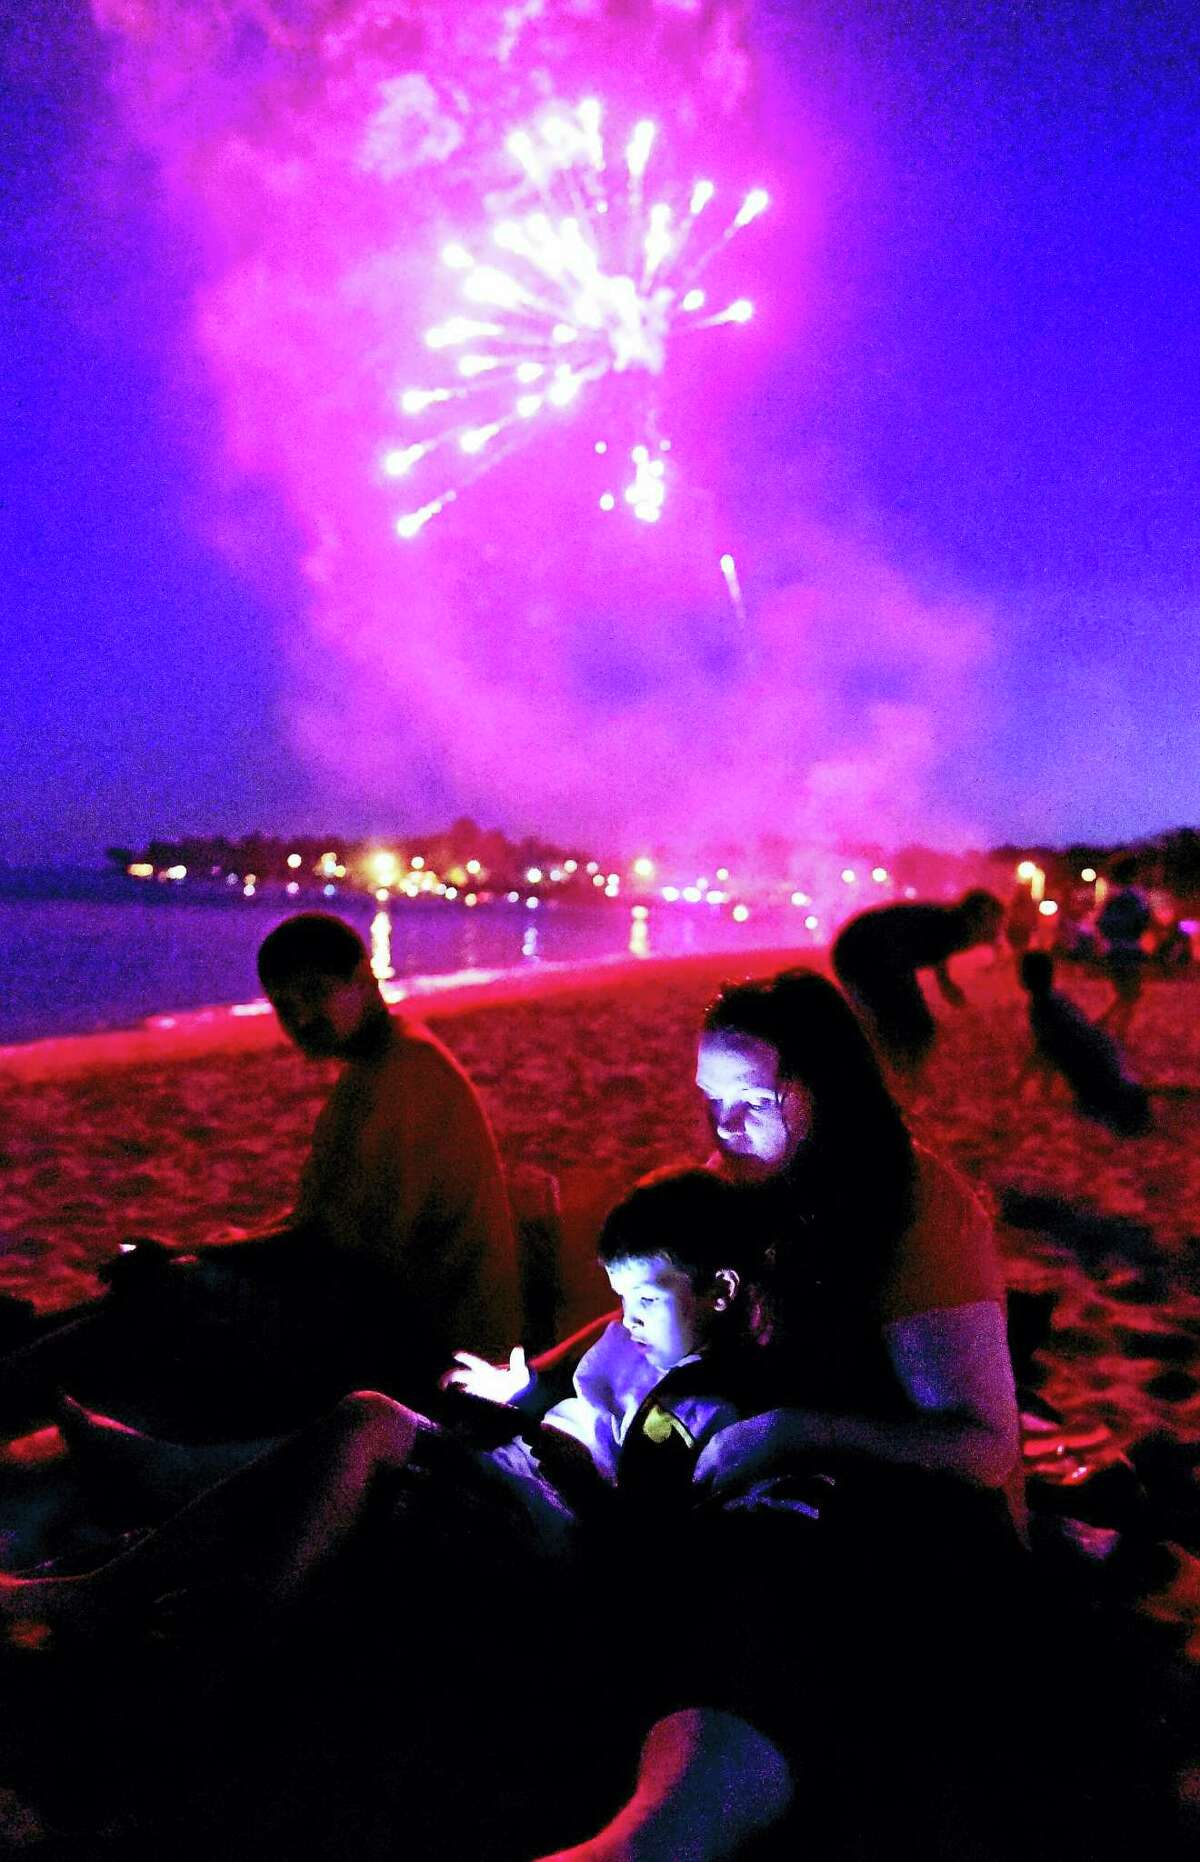 In this file photo, personal fireworks burst in the air near Stony Beach and before the start of the West Haven Fireworks on Savin Rock as West Haven celebrated Independence Day.